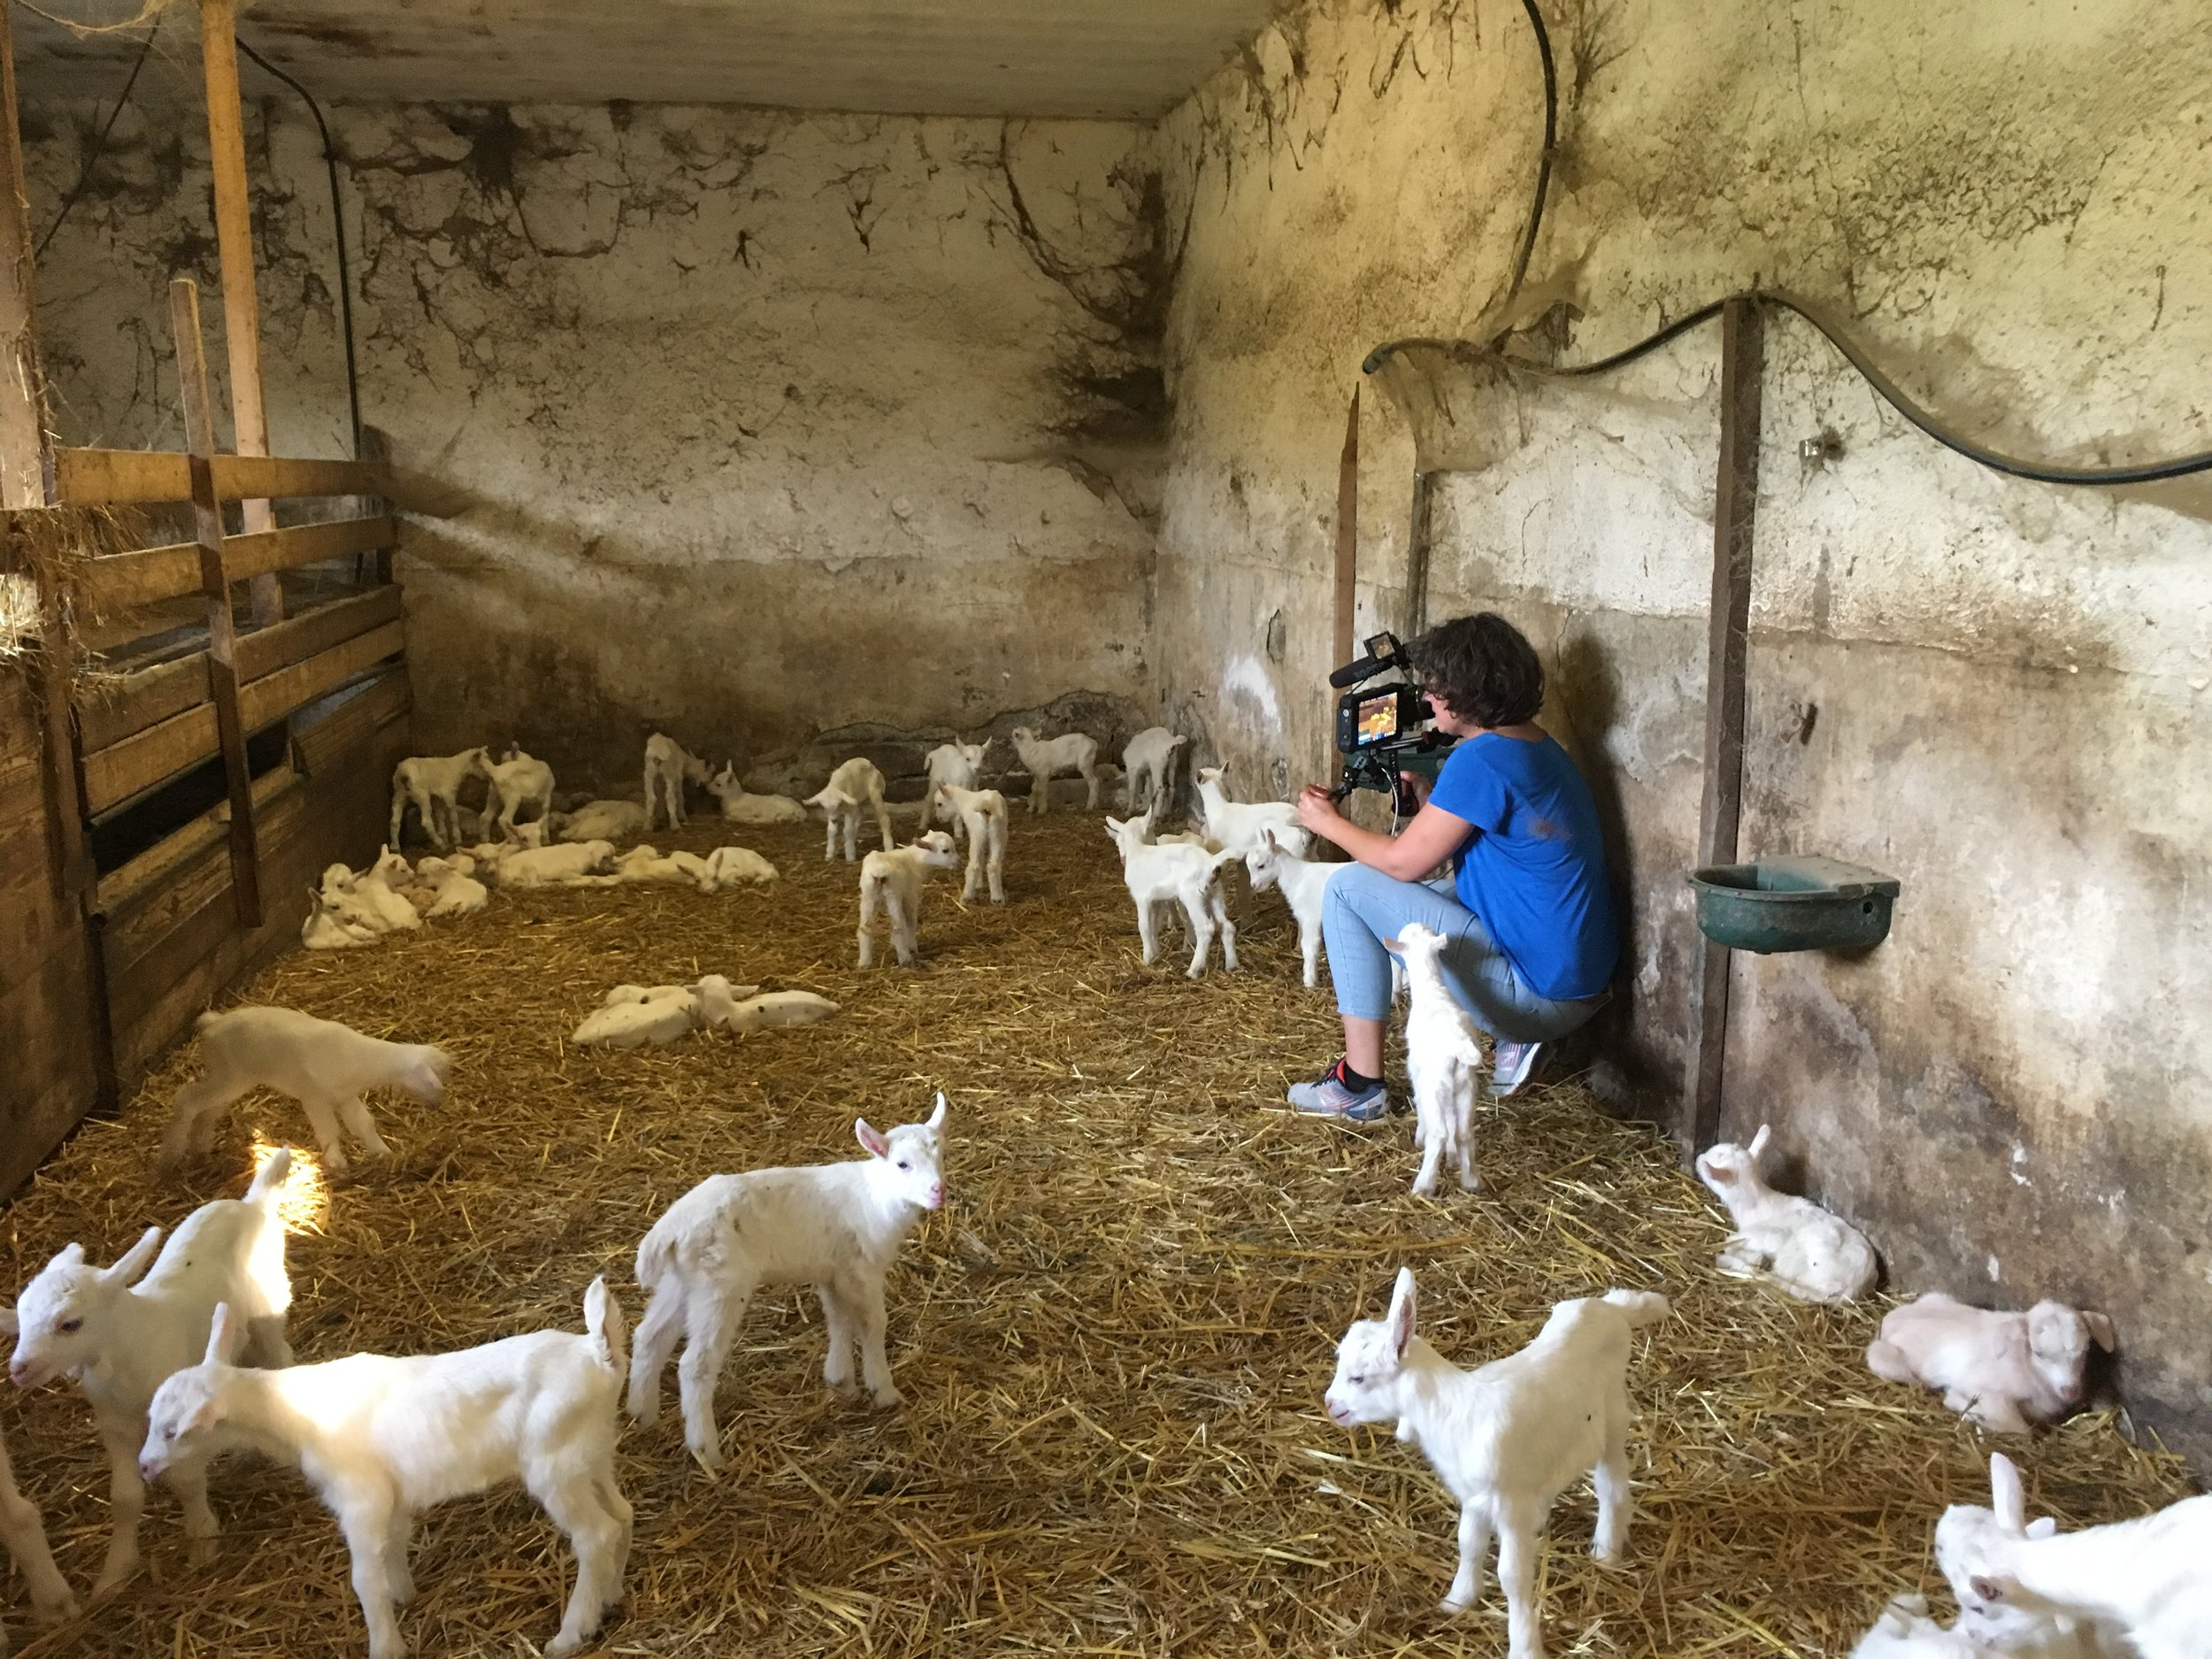 Cinematographer Anna Cooley filming all the baby goats on location at the Cora Formaggi goat farm.